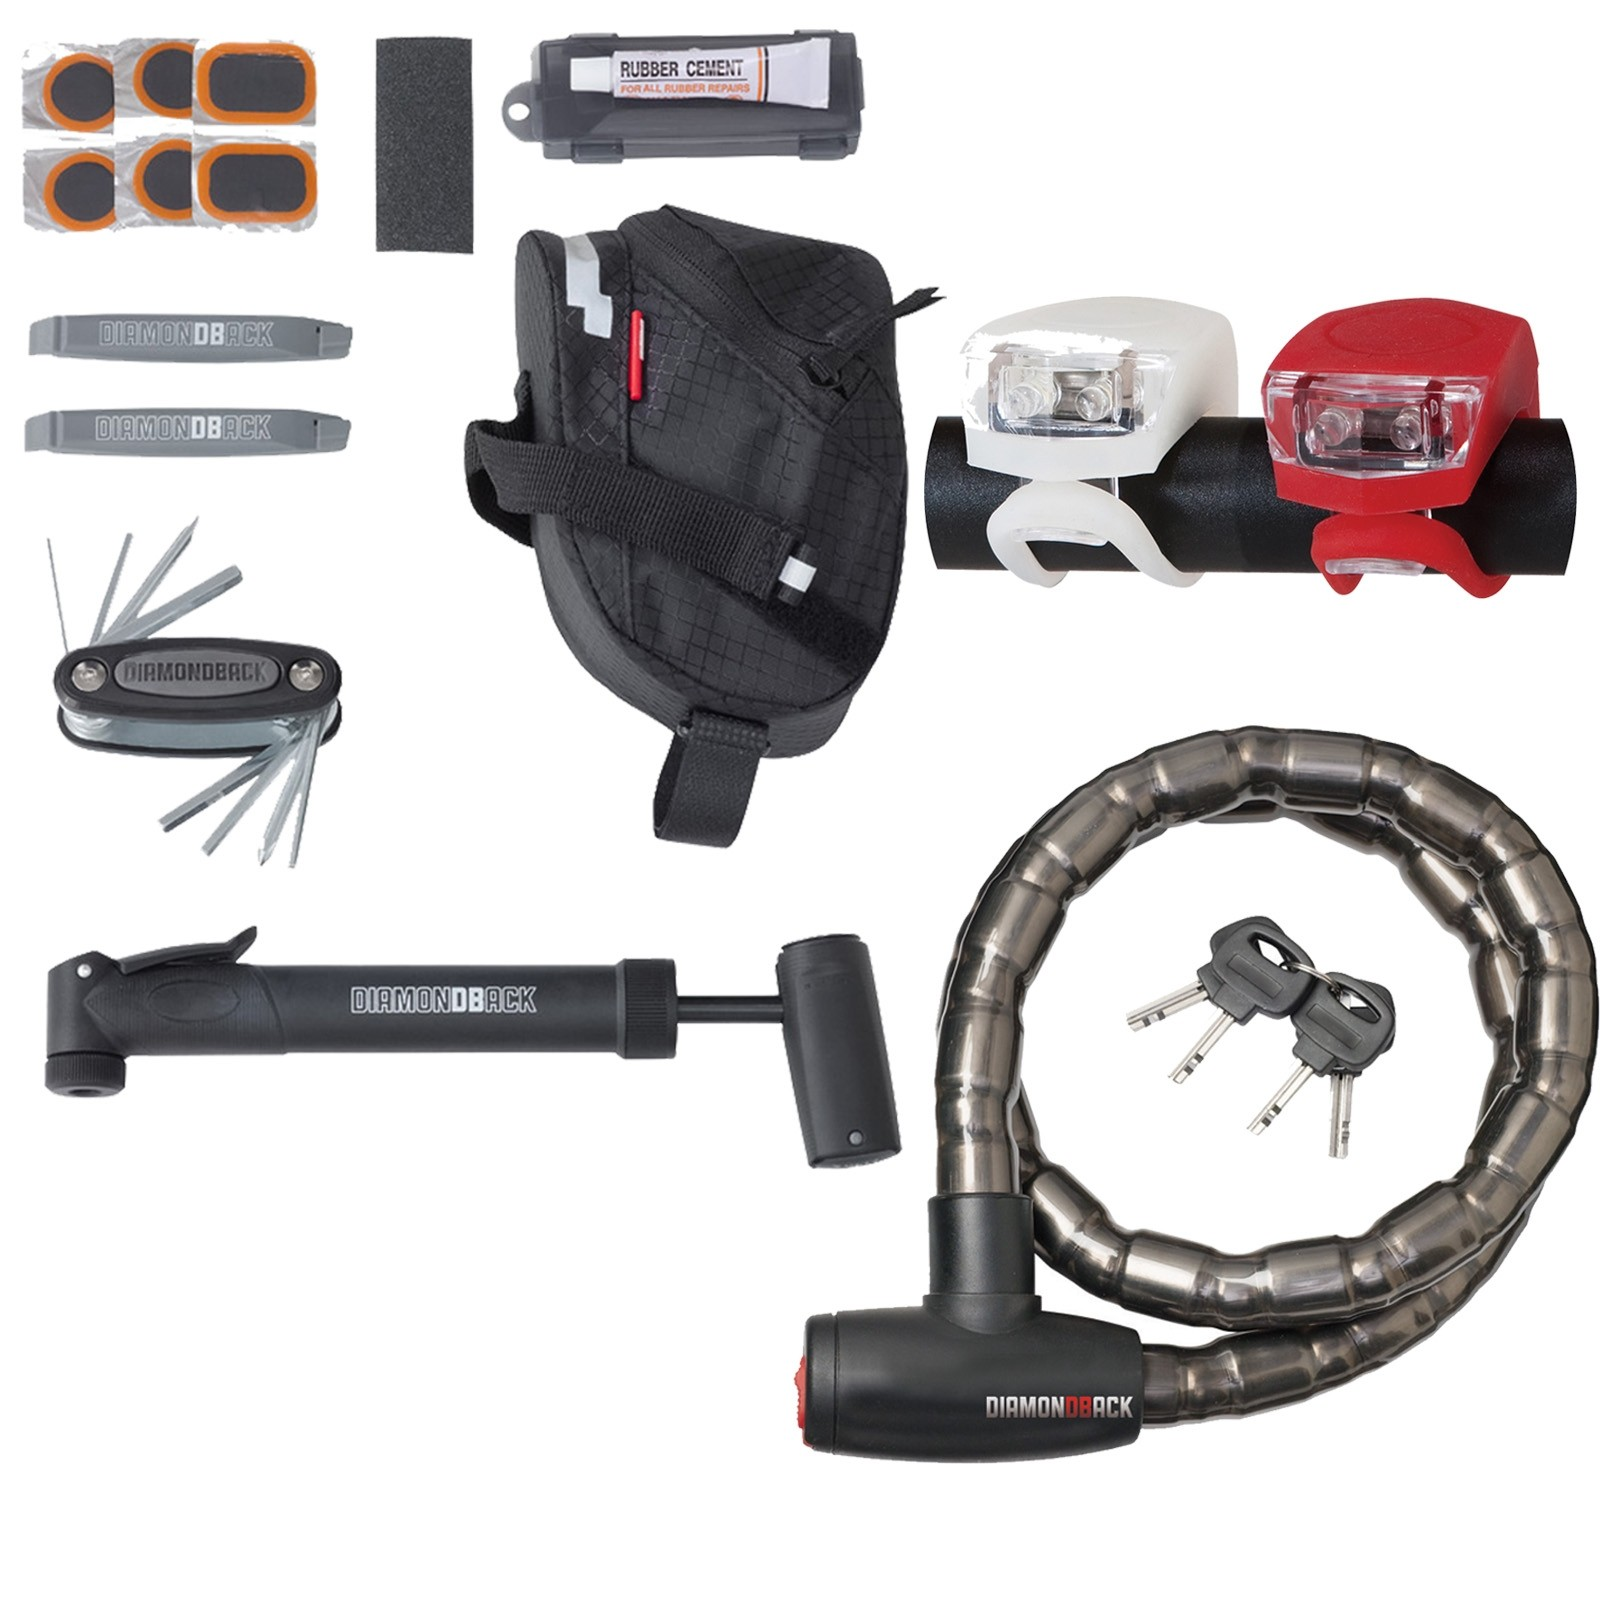 Bike tool kit with pump and lock